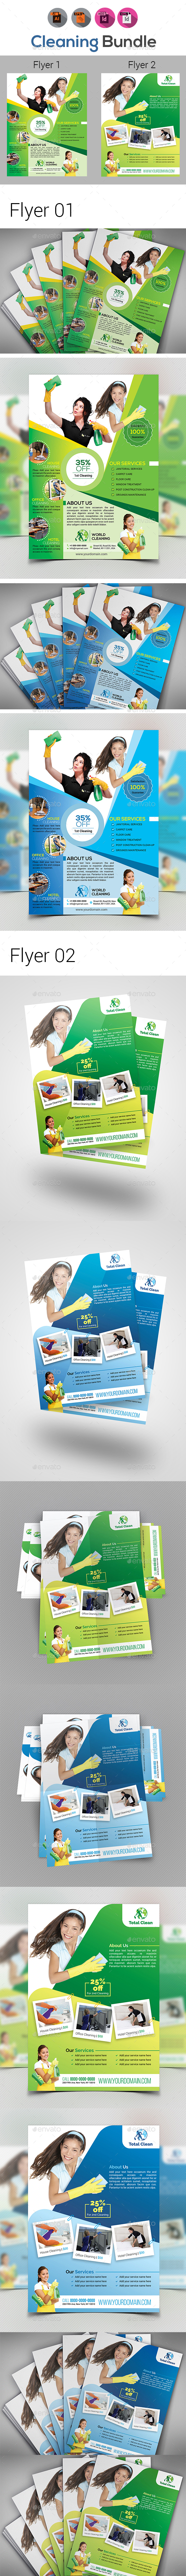 Cleaning Service Flyer Template Bundle - Corporate Flyers